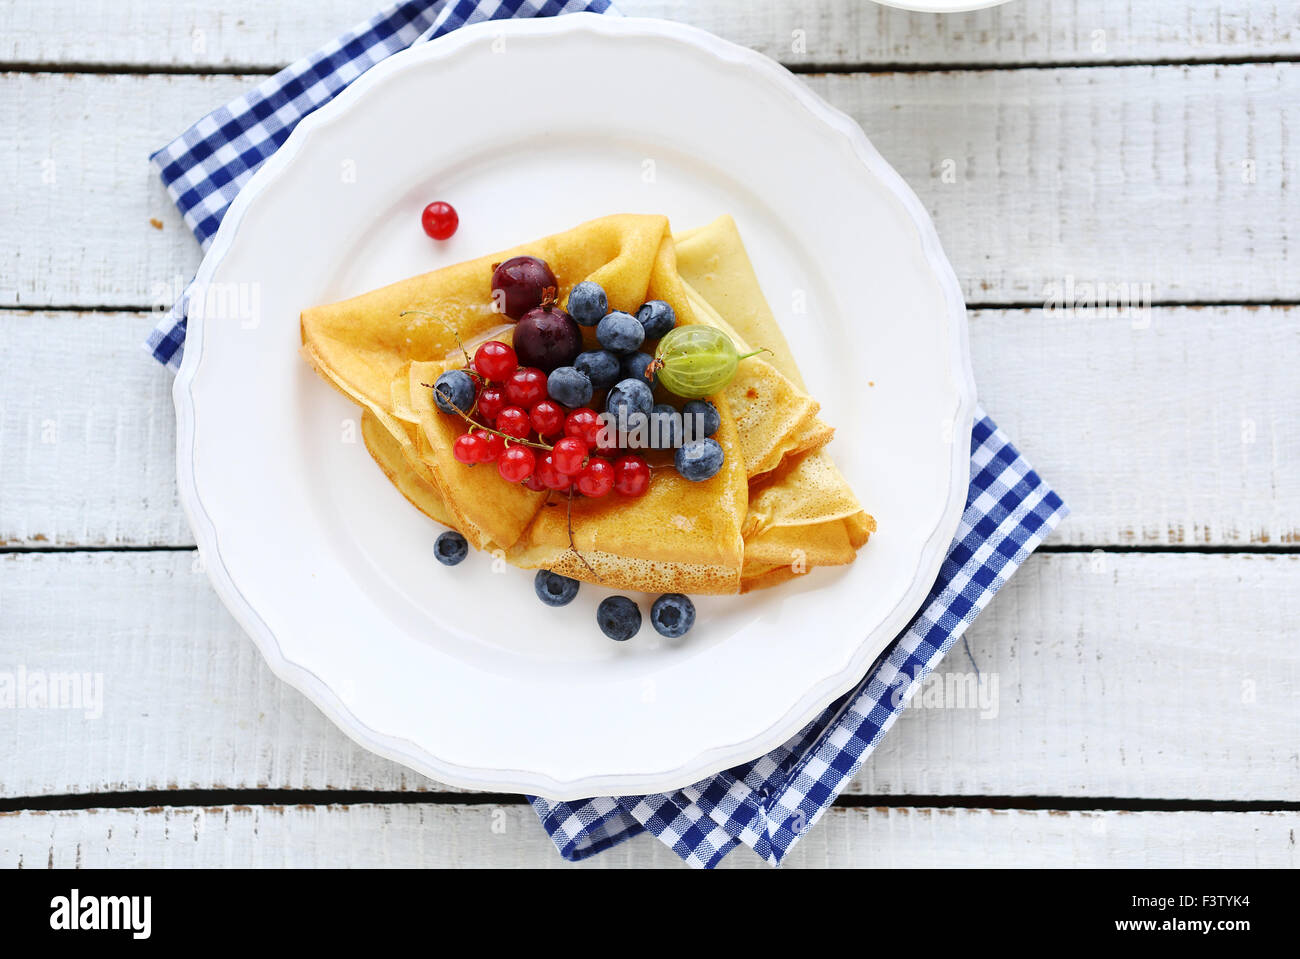 french crepes with berries, top view - Stock Image